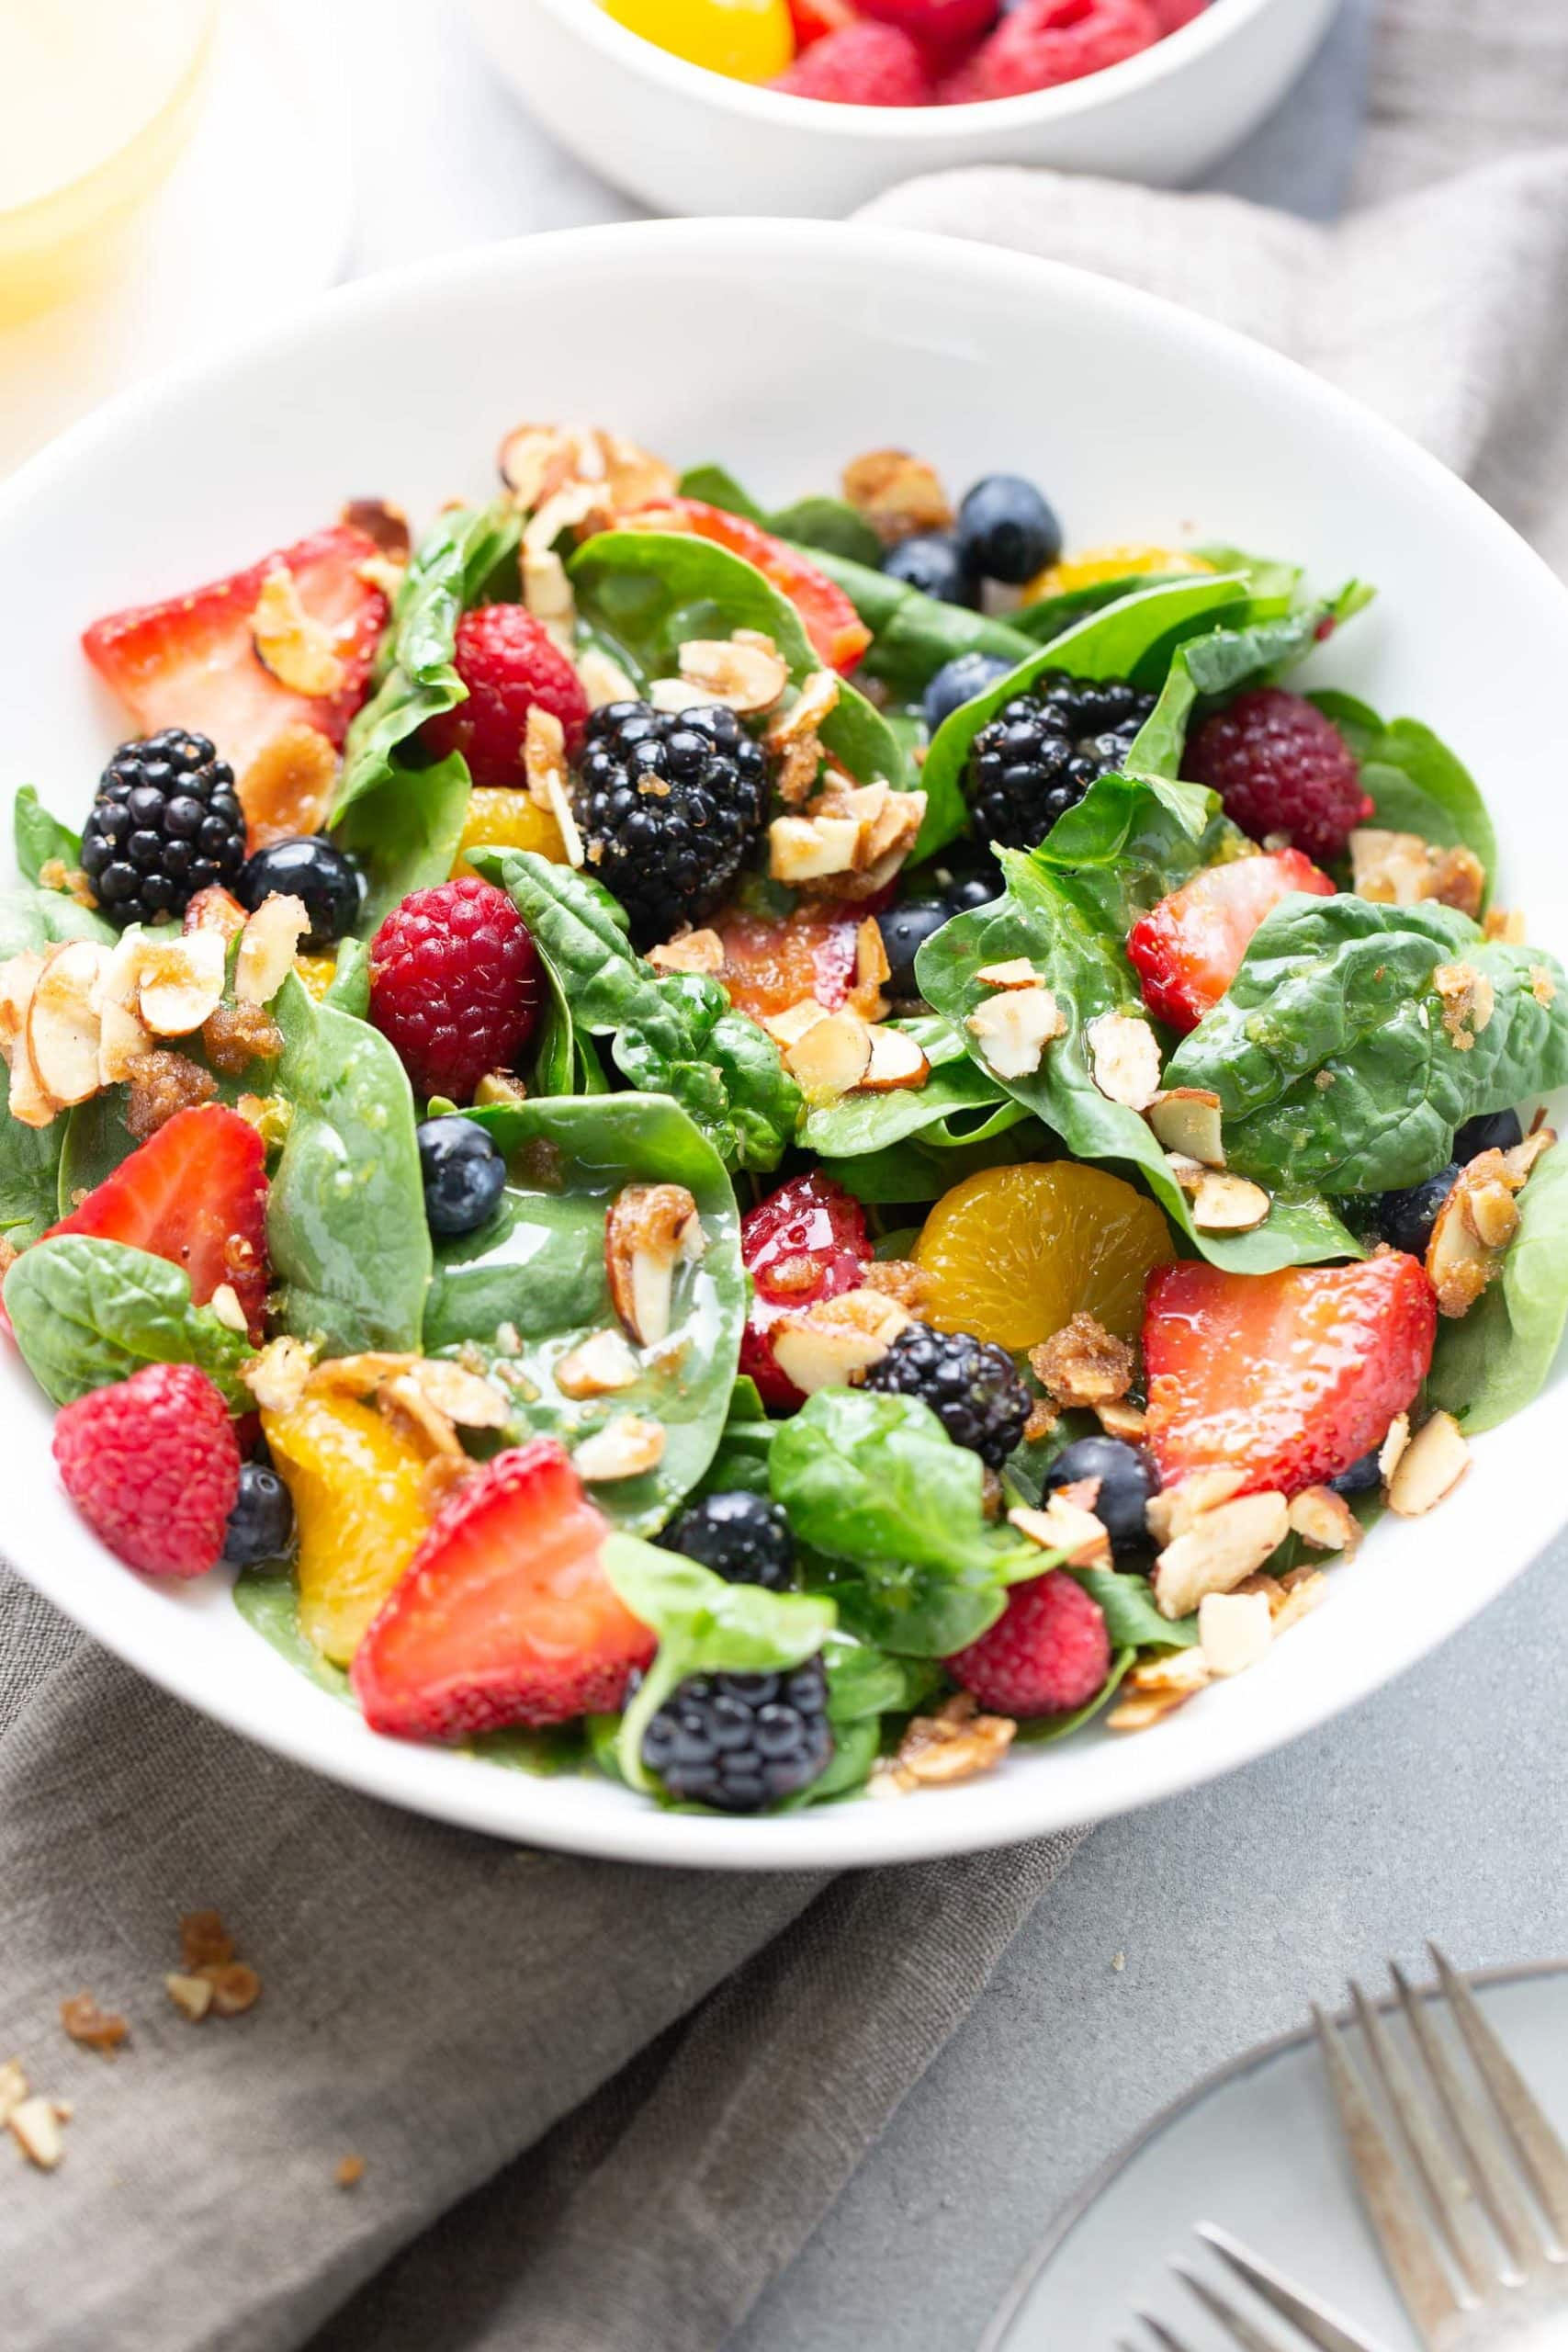 A photo of a large ceramic white bowl full of spinach berry salad topped with brown sugar almonds and blackberries, raspberries, and strawberries.